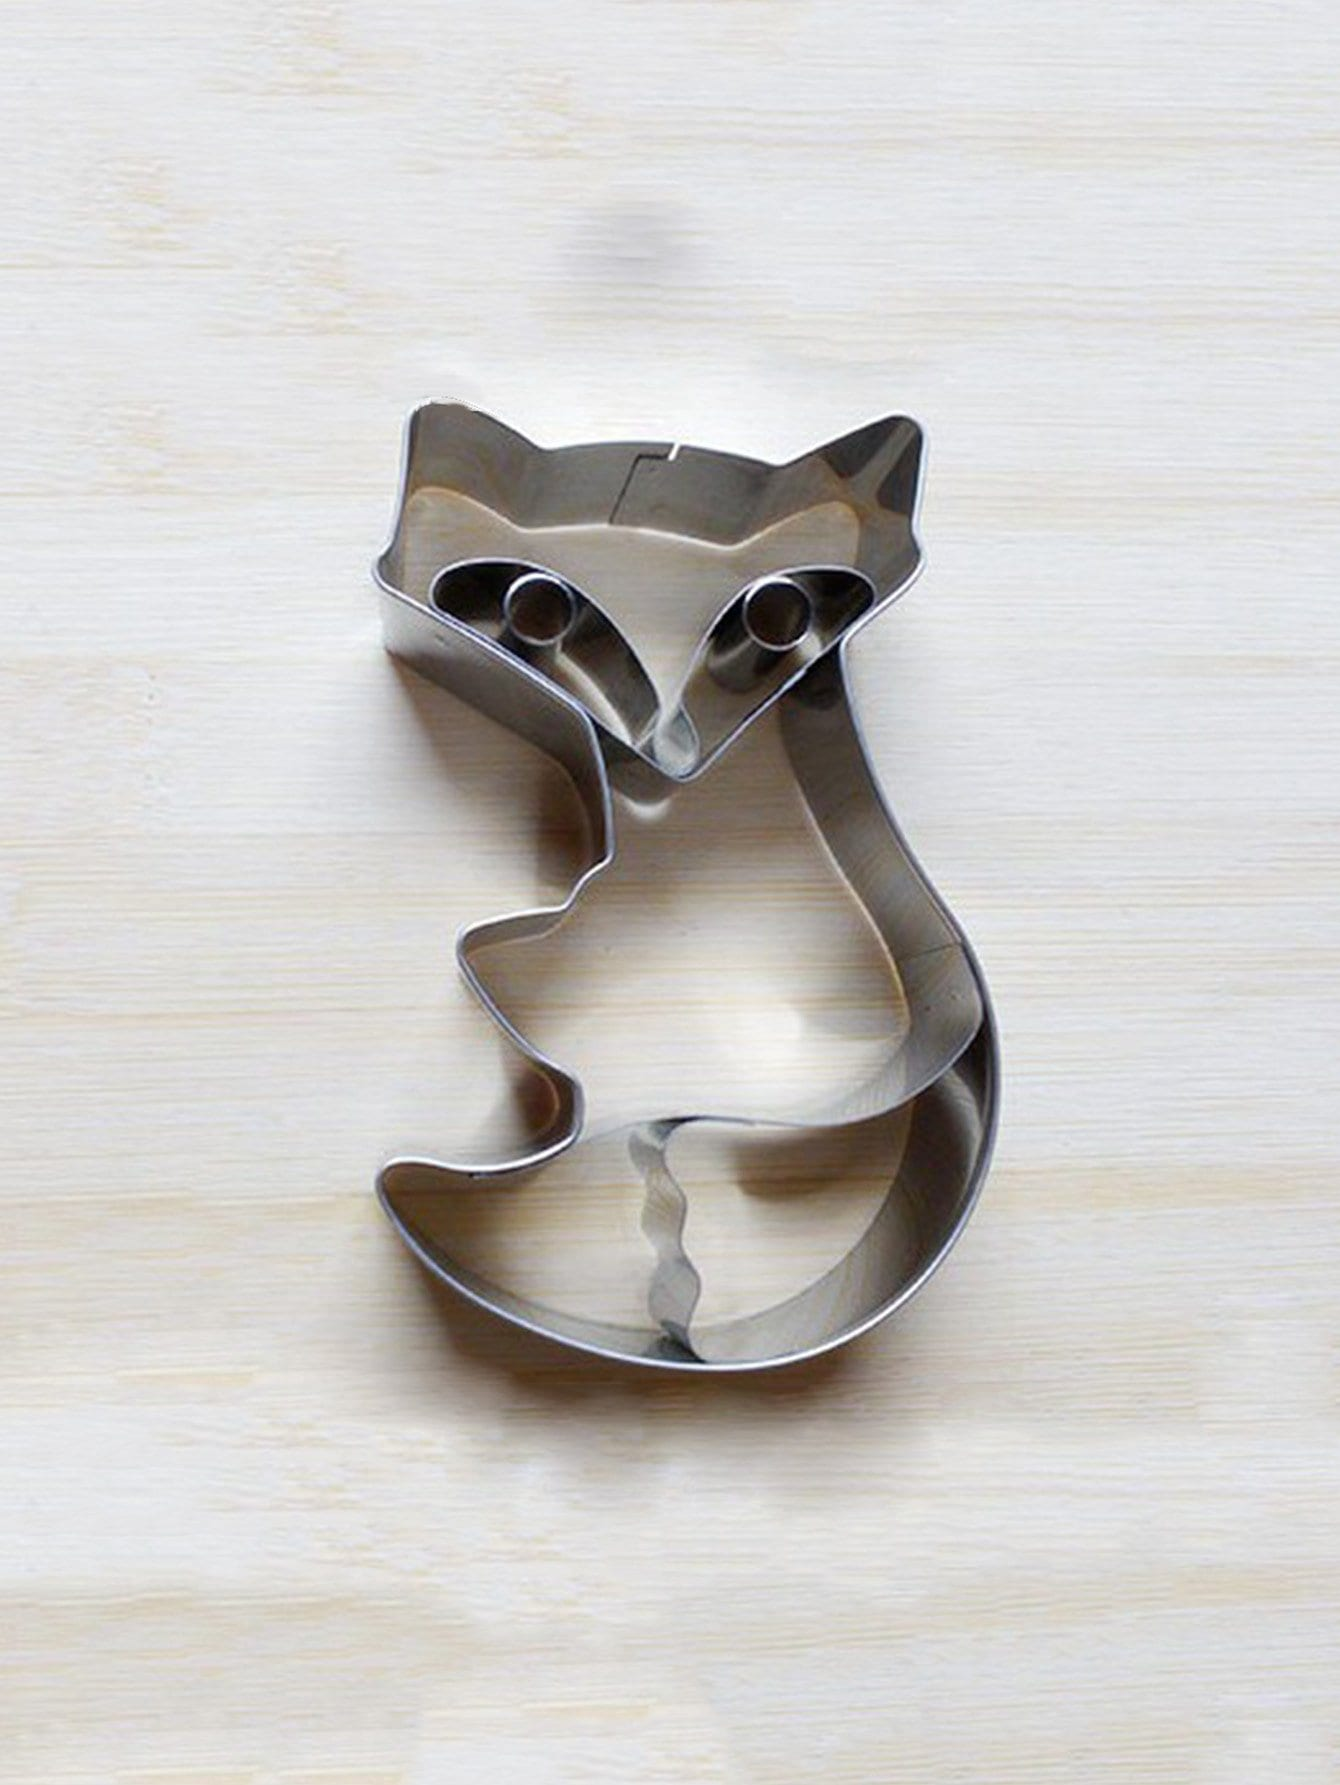 Stainless Steel Fox Cookie Cutter 1pc stainless steel abs spring cookie cutter blue silver